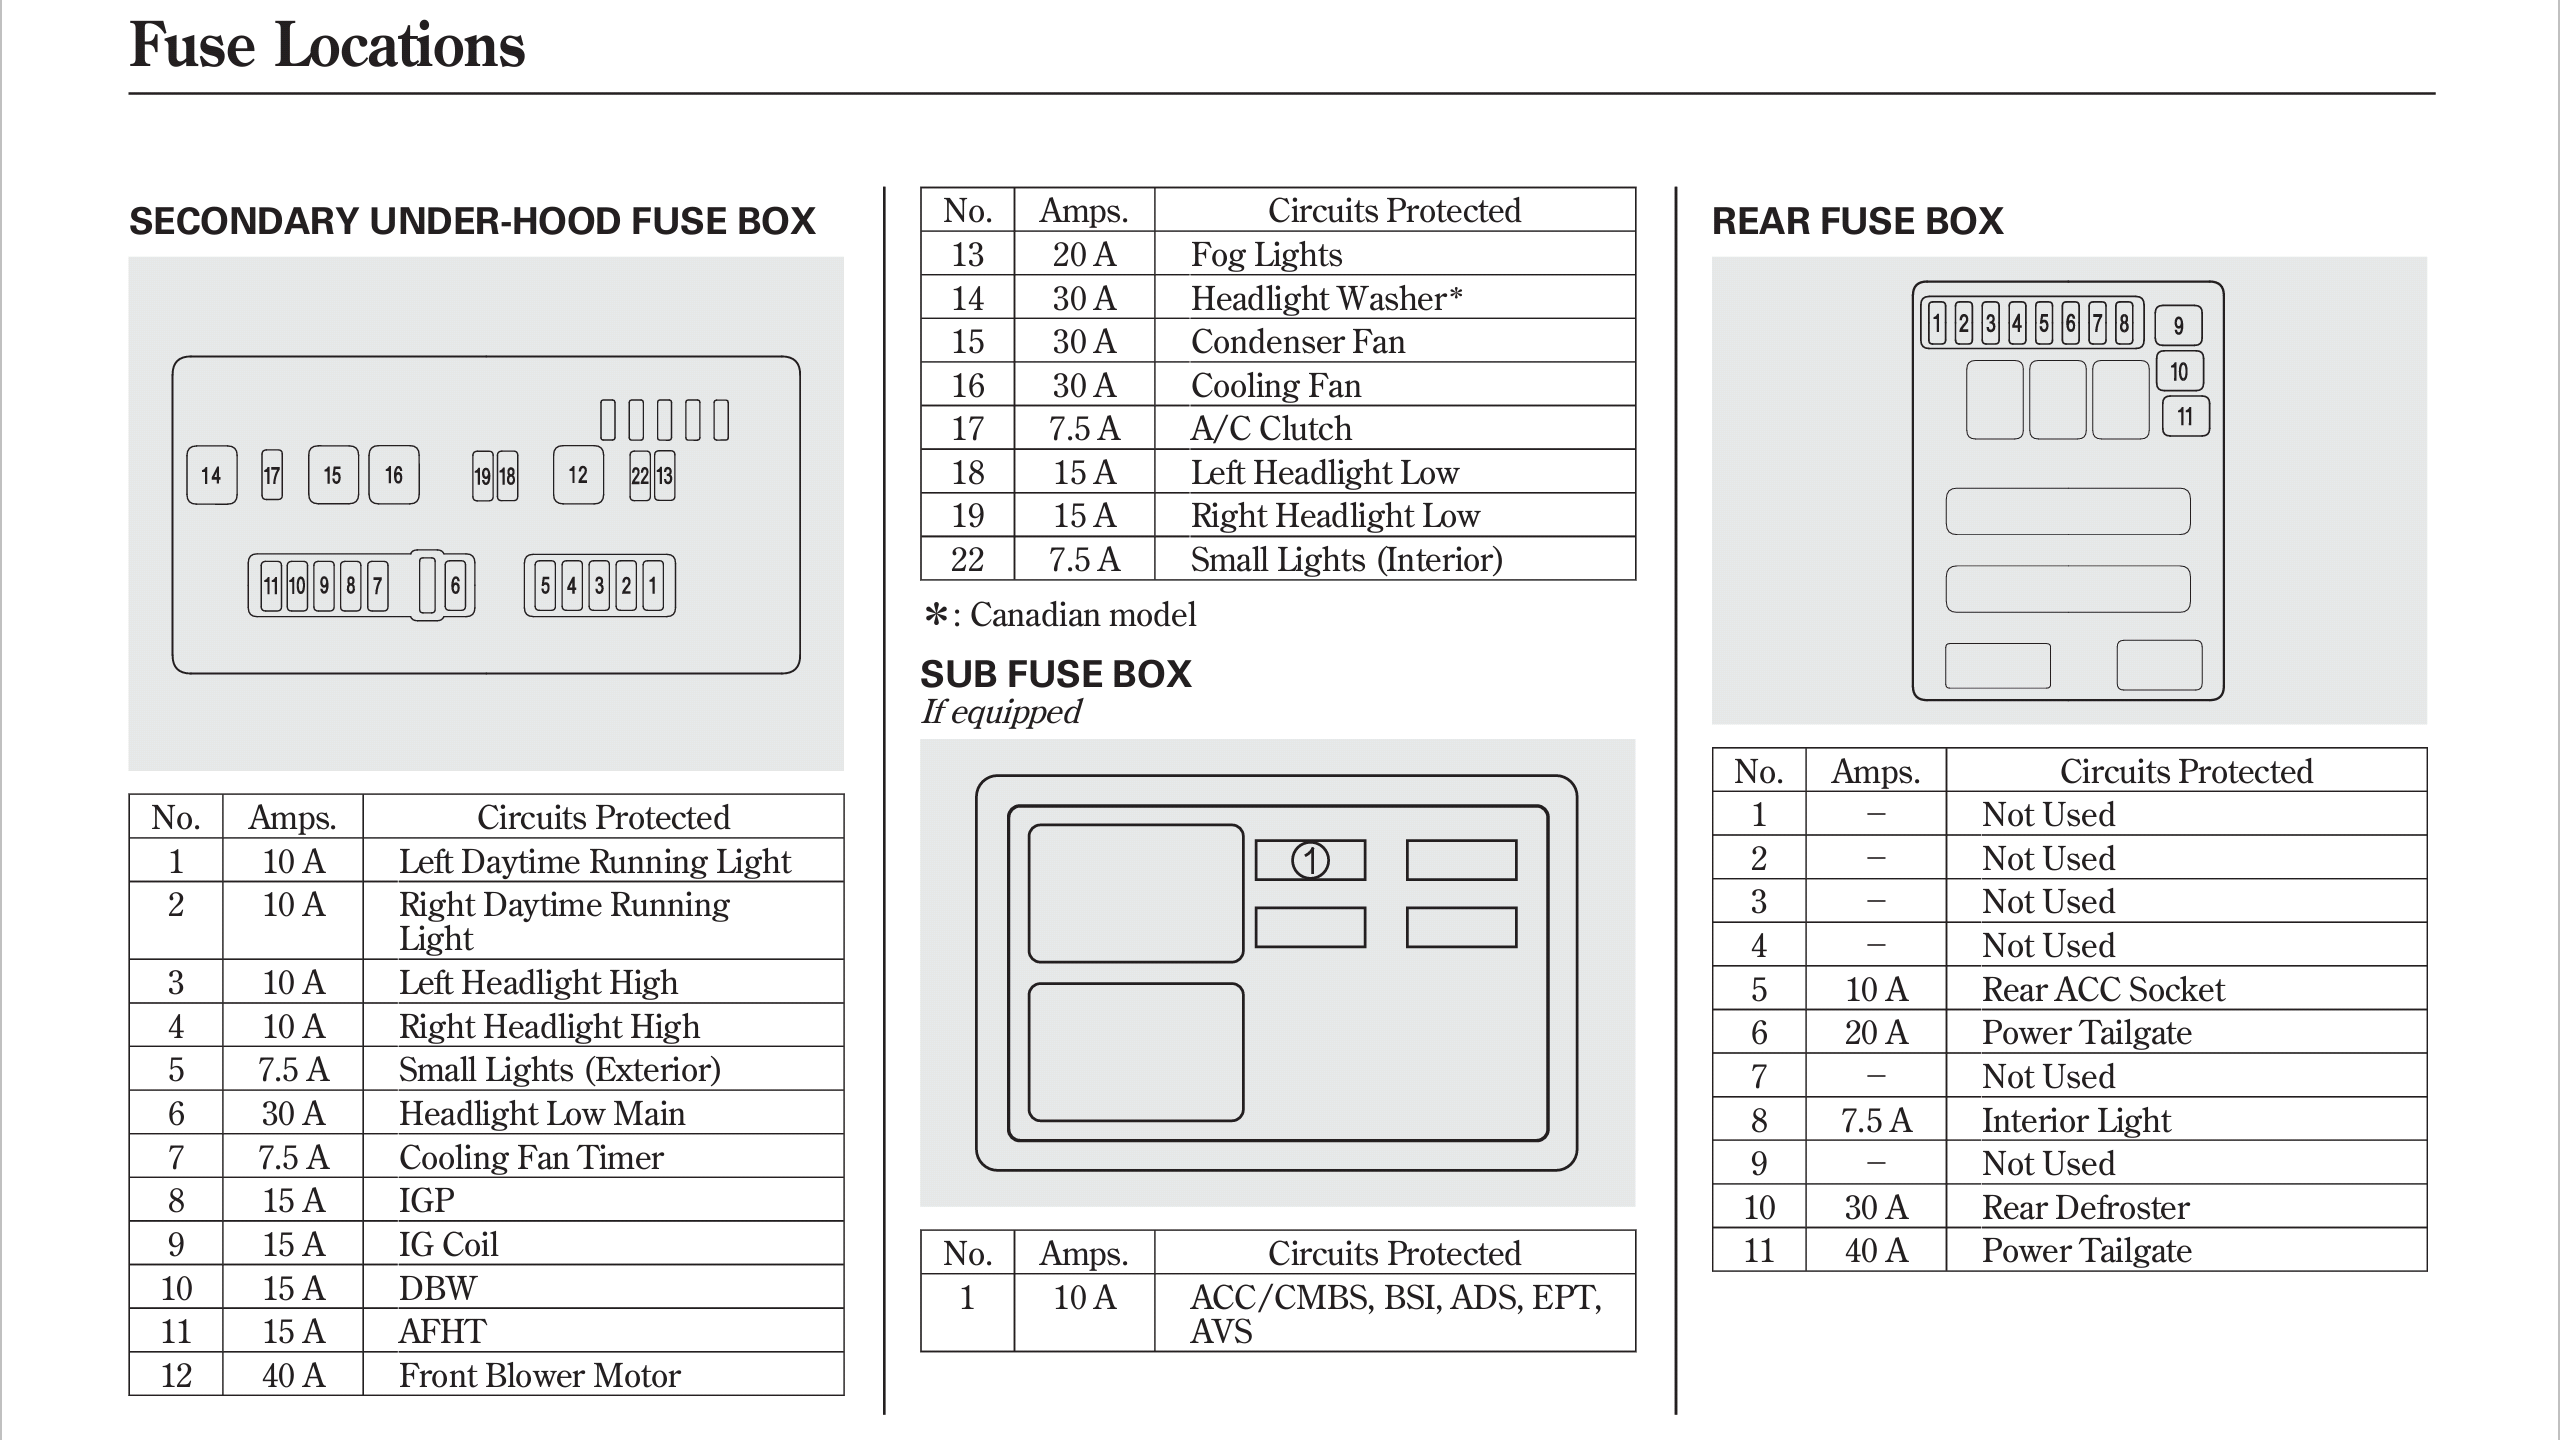 2010 Blind Spot Information wiring diagram | Acura MDX SUV Forums | 2015 Acura Rdx Wiring Diagram |  | MDXers.org